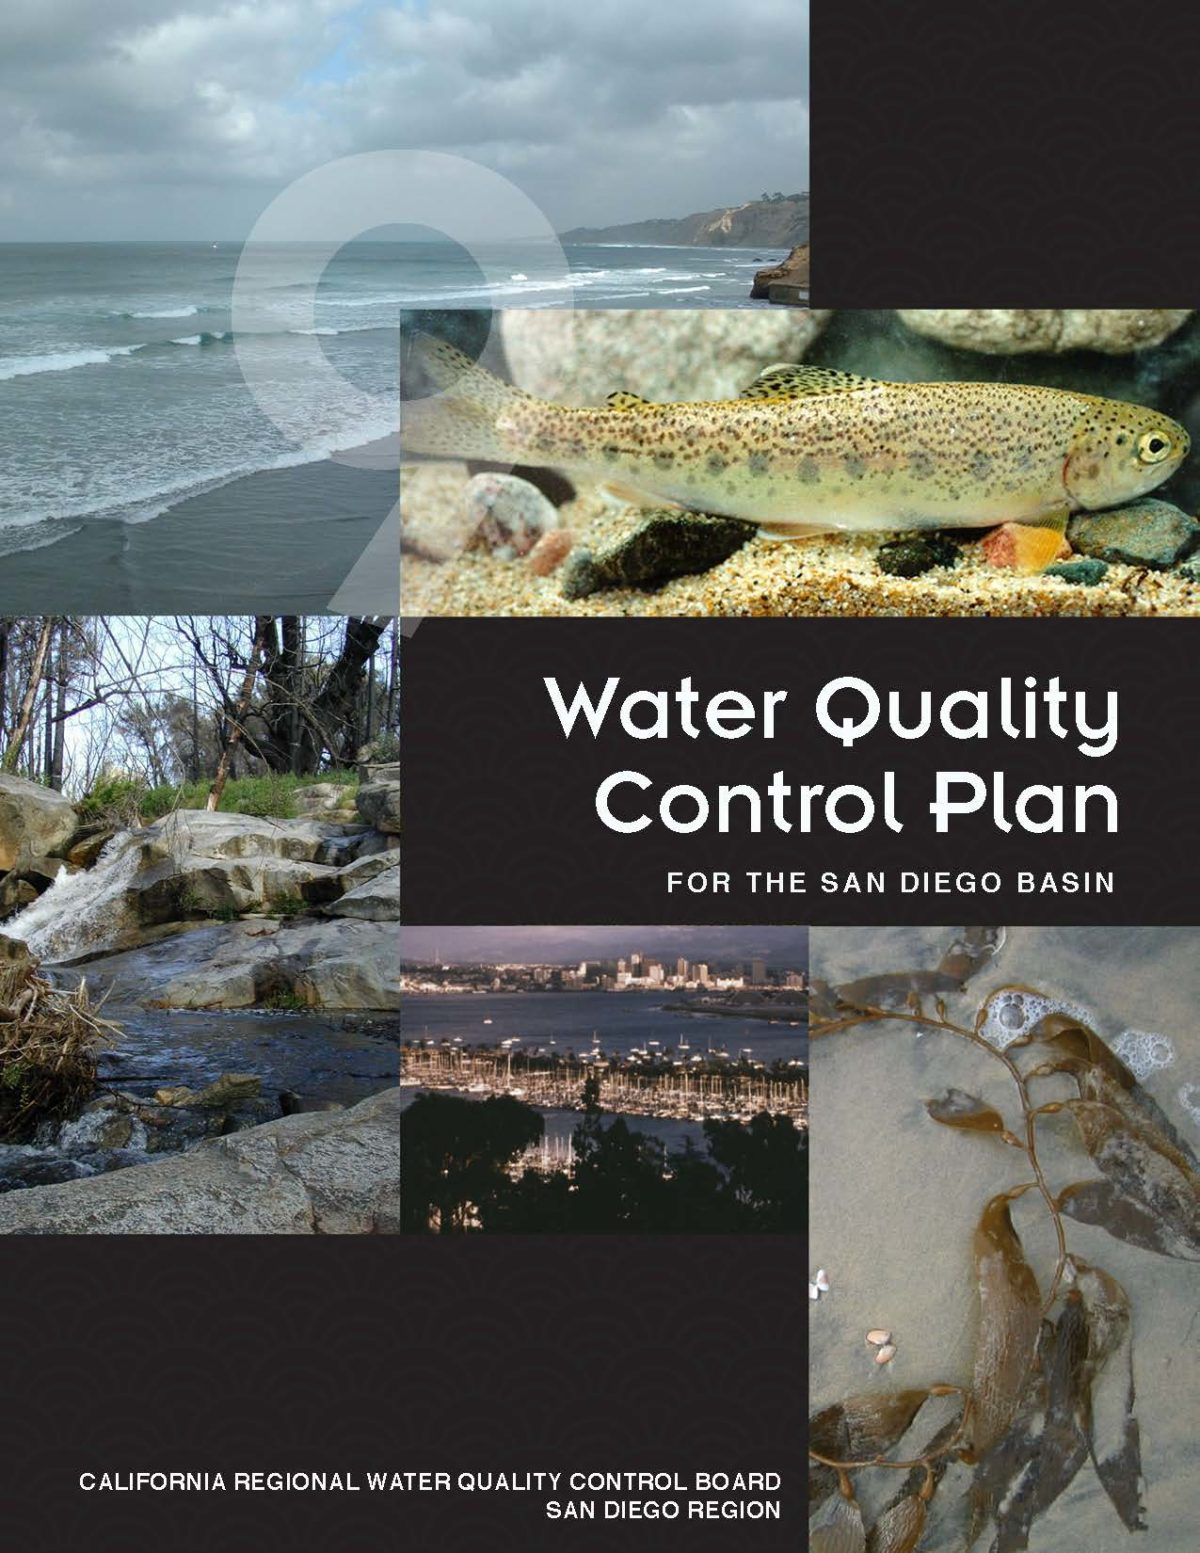 Water Quality Control Plan for the San Diego region